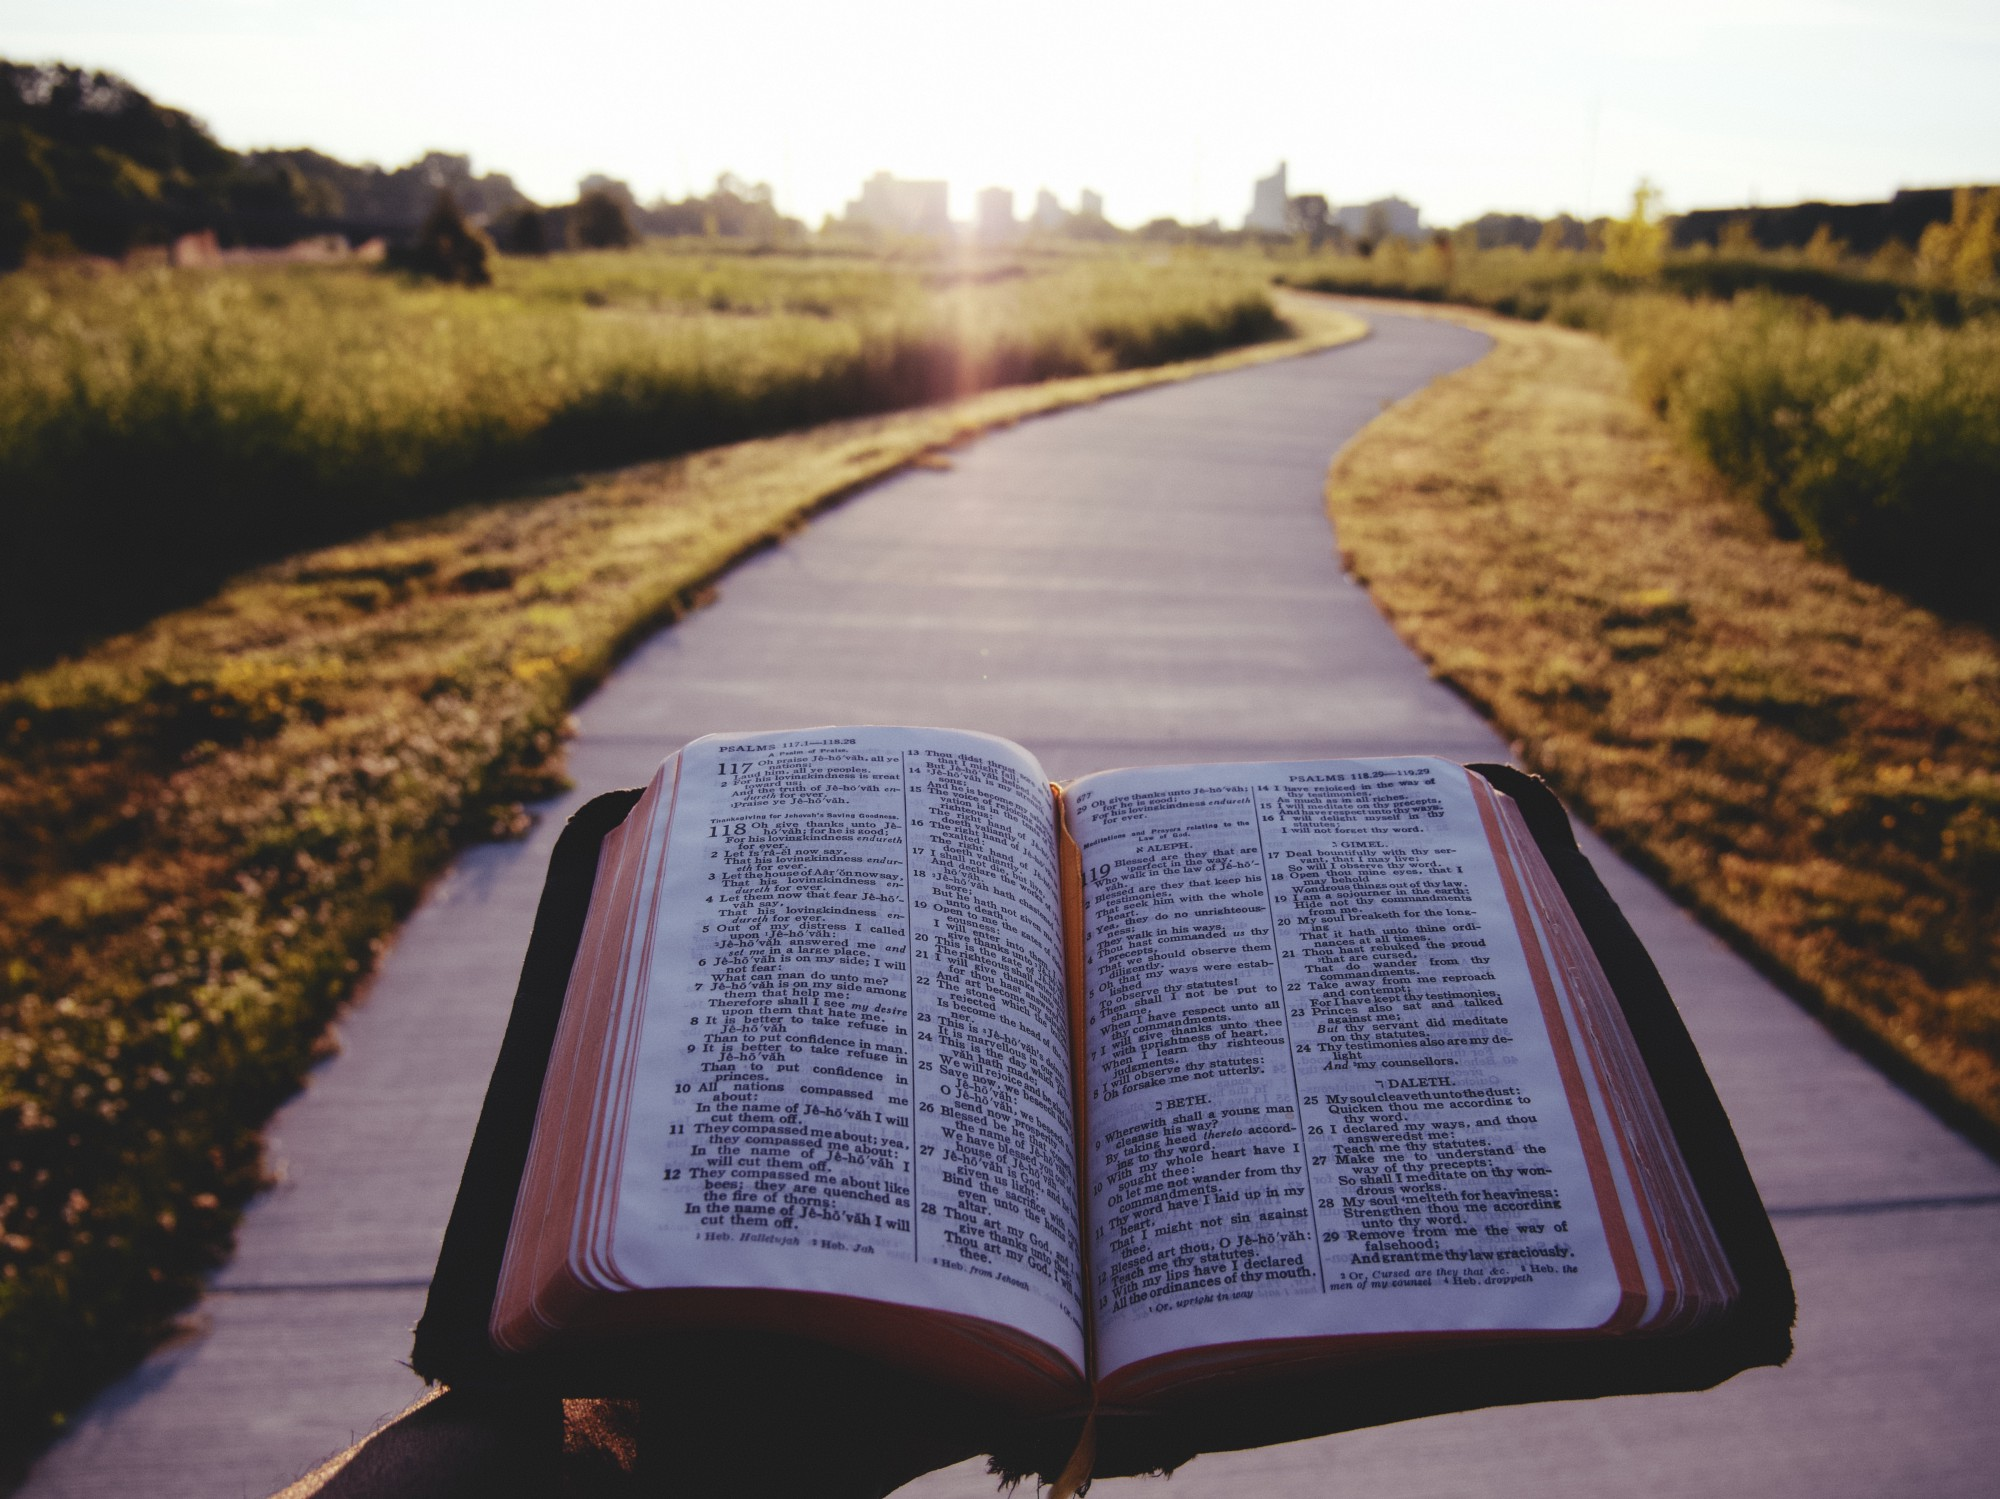 Man holding a Bible while standing still on a sidewalk